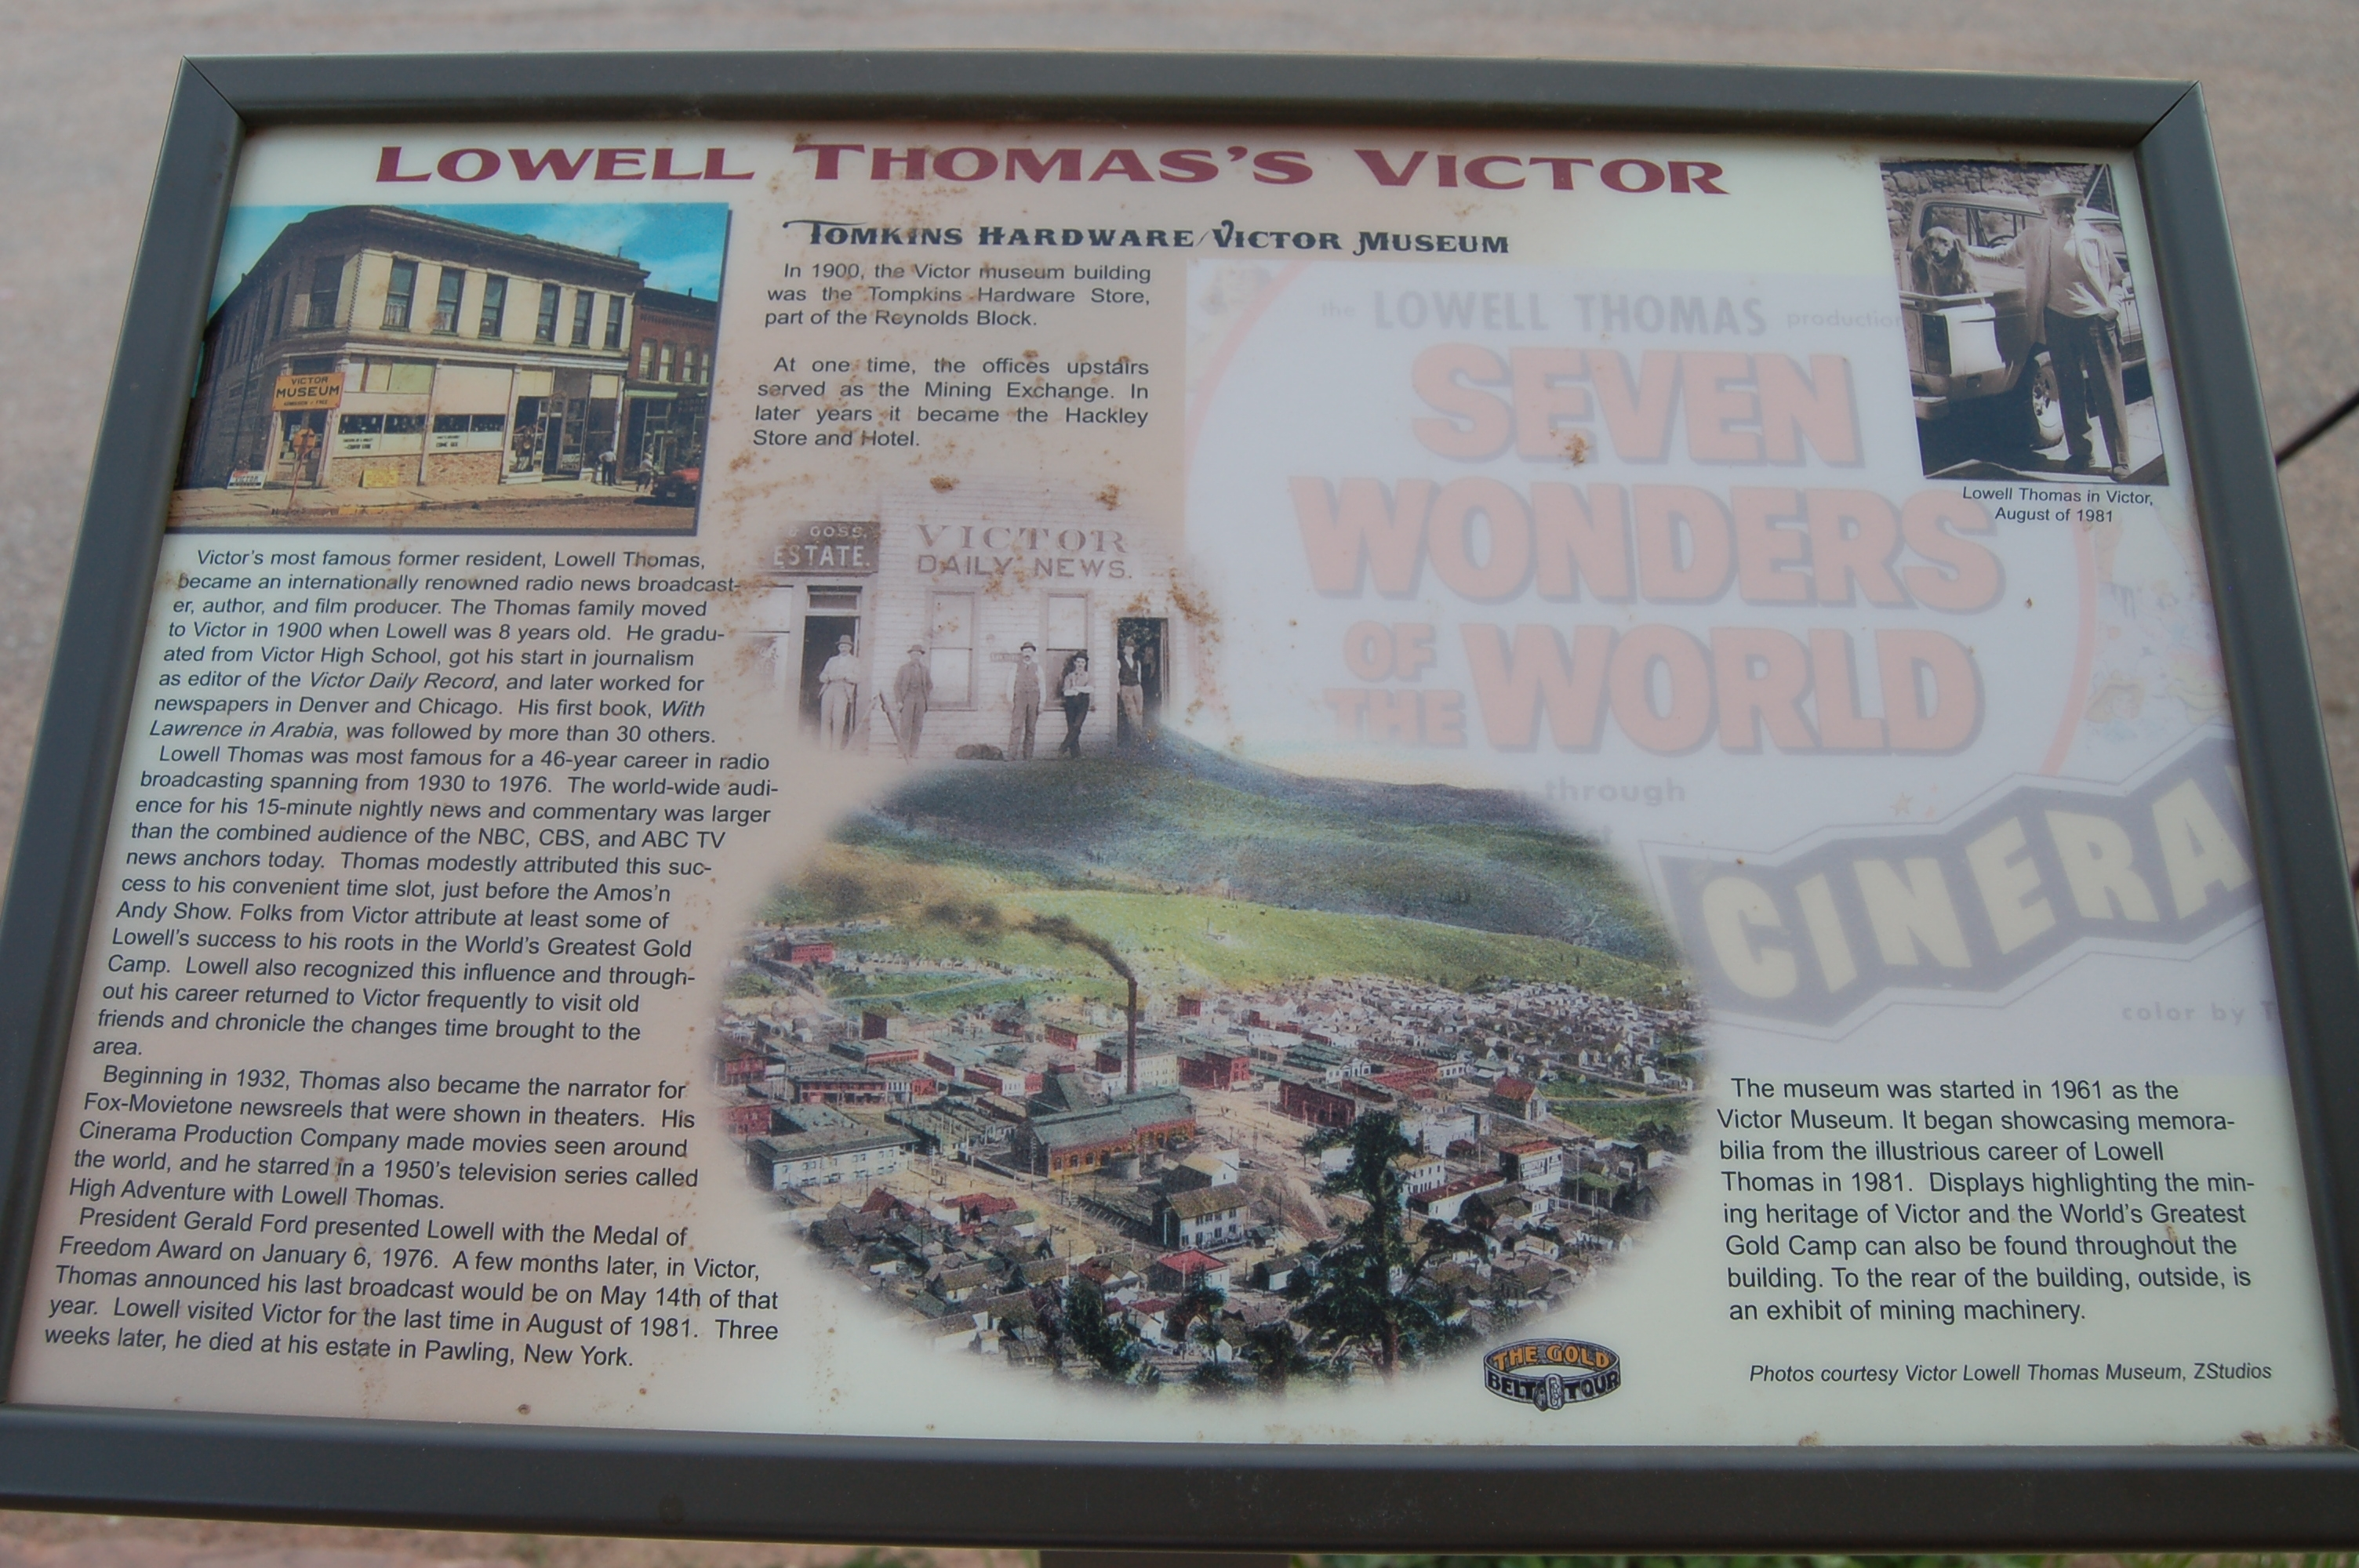 Lowell Thomas's Victor Marker